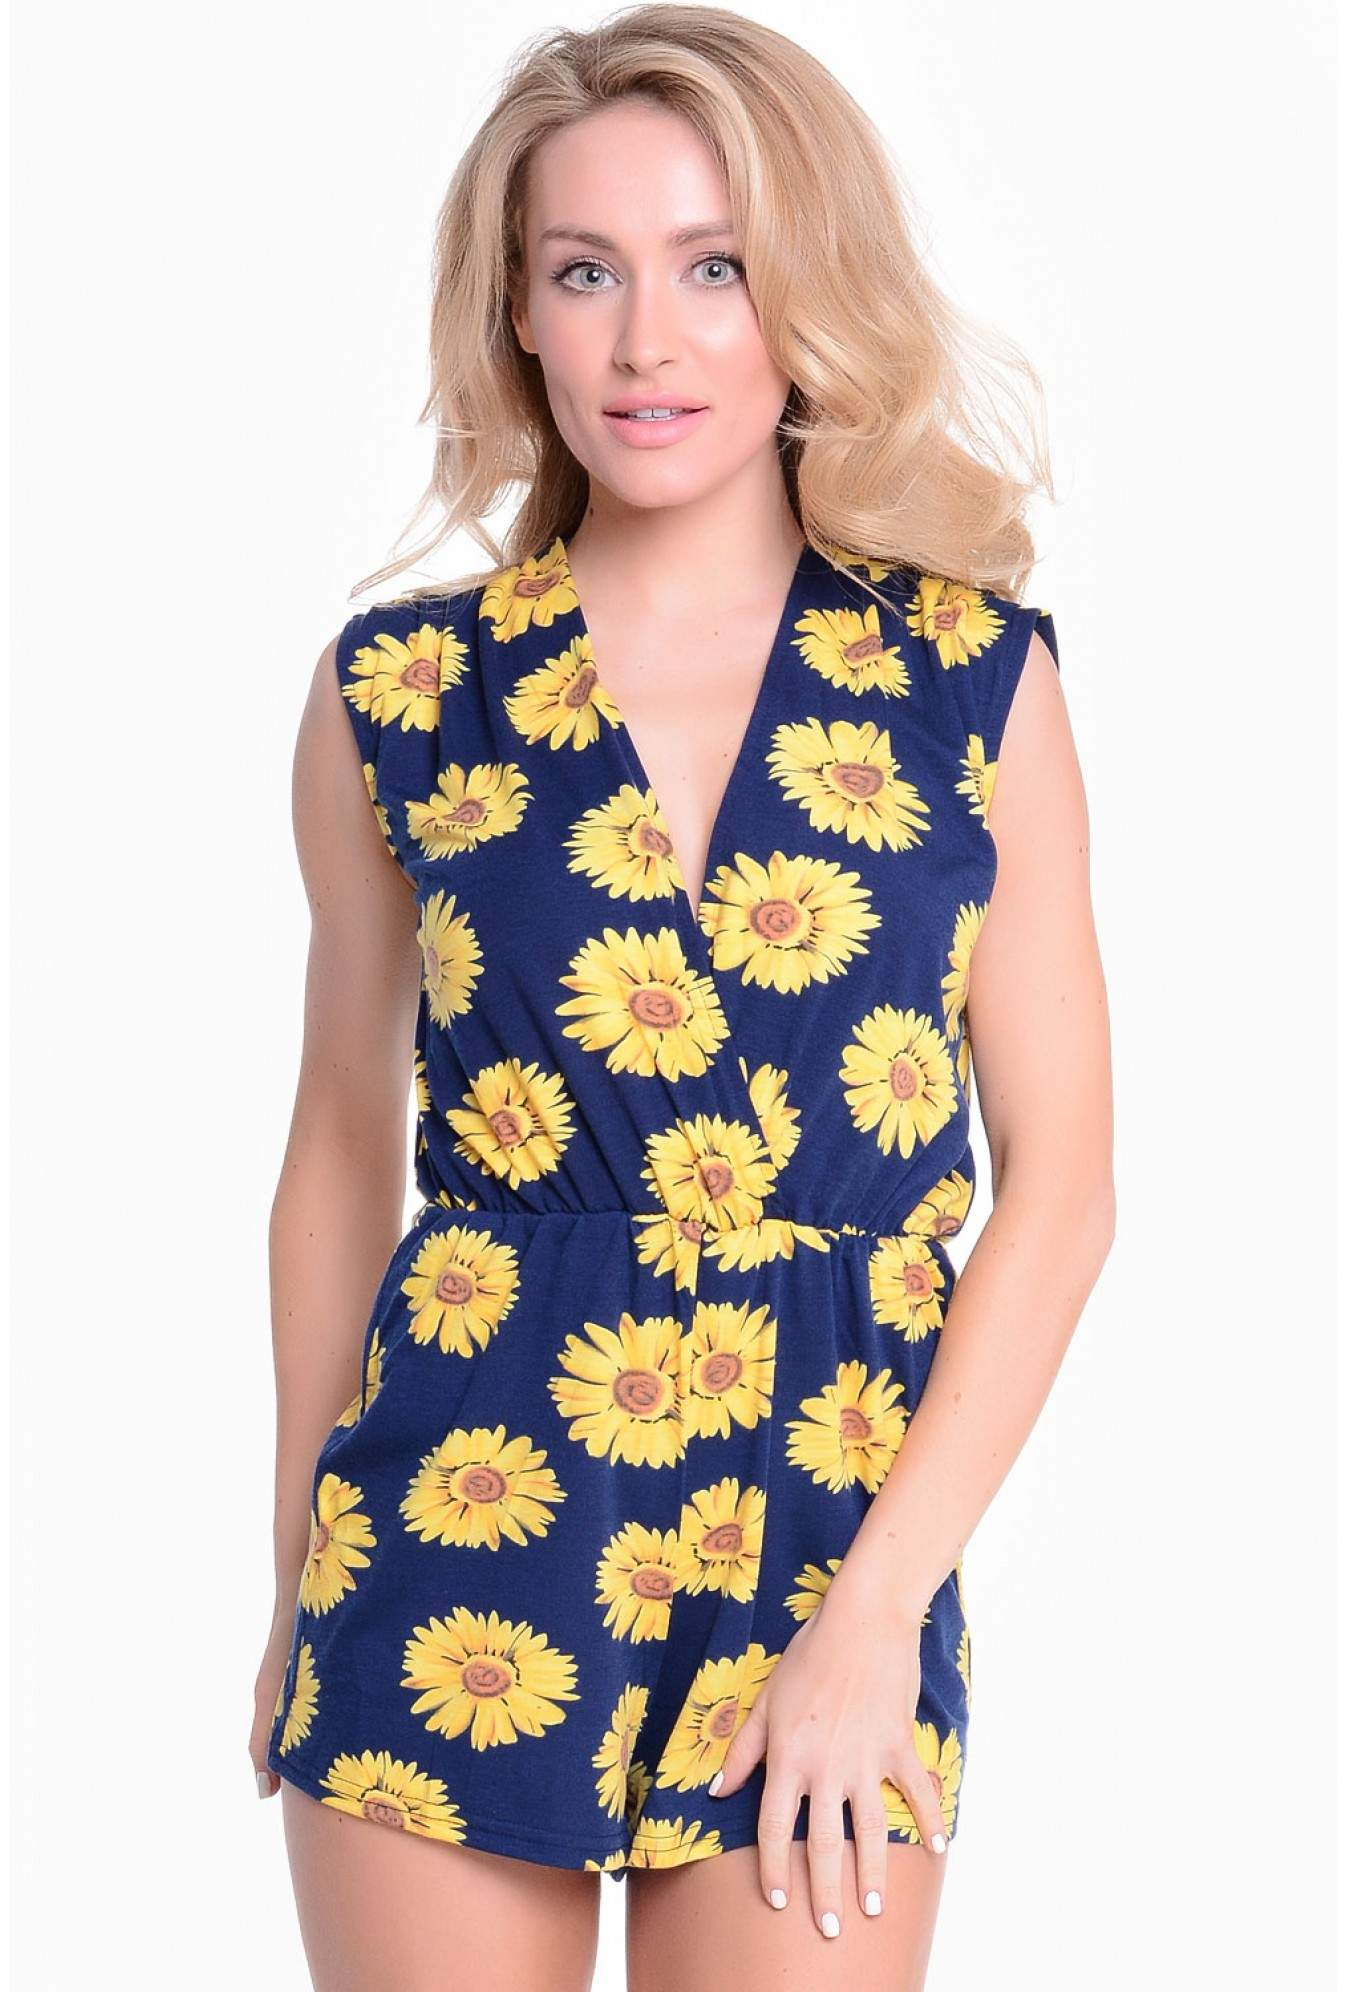 b4d531cd34f8a4 AX Paris Janet Daisy Wrap Front Playsuit in Navy   iCLOTHING